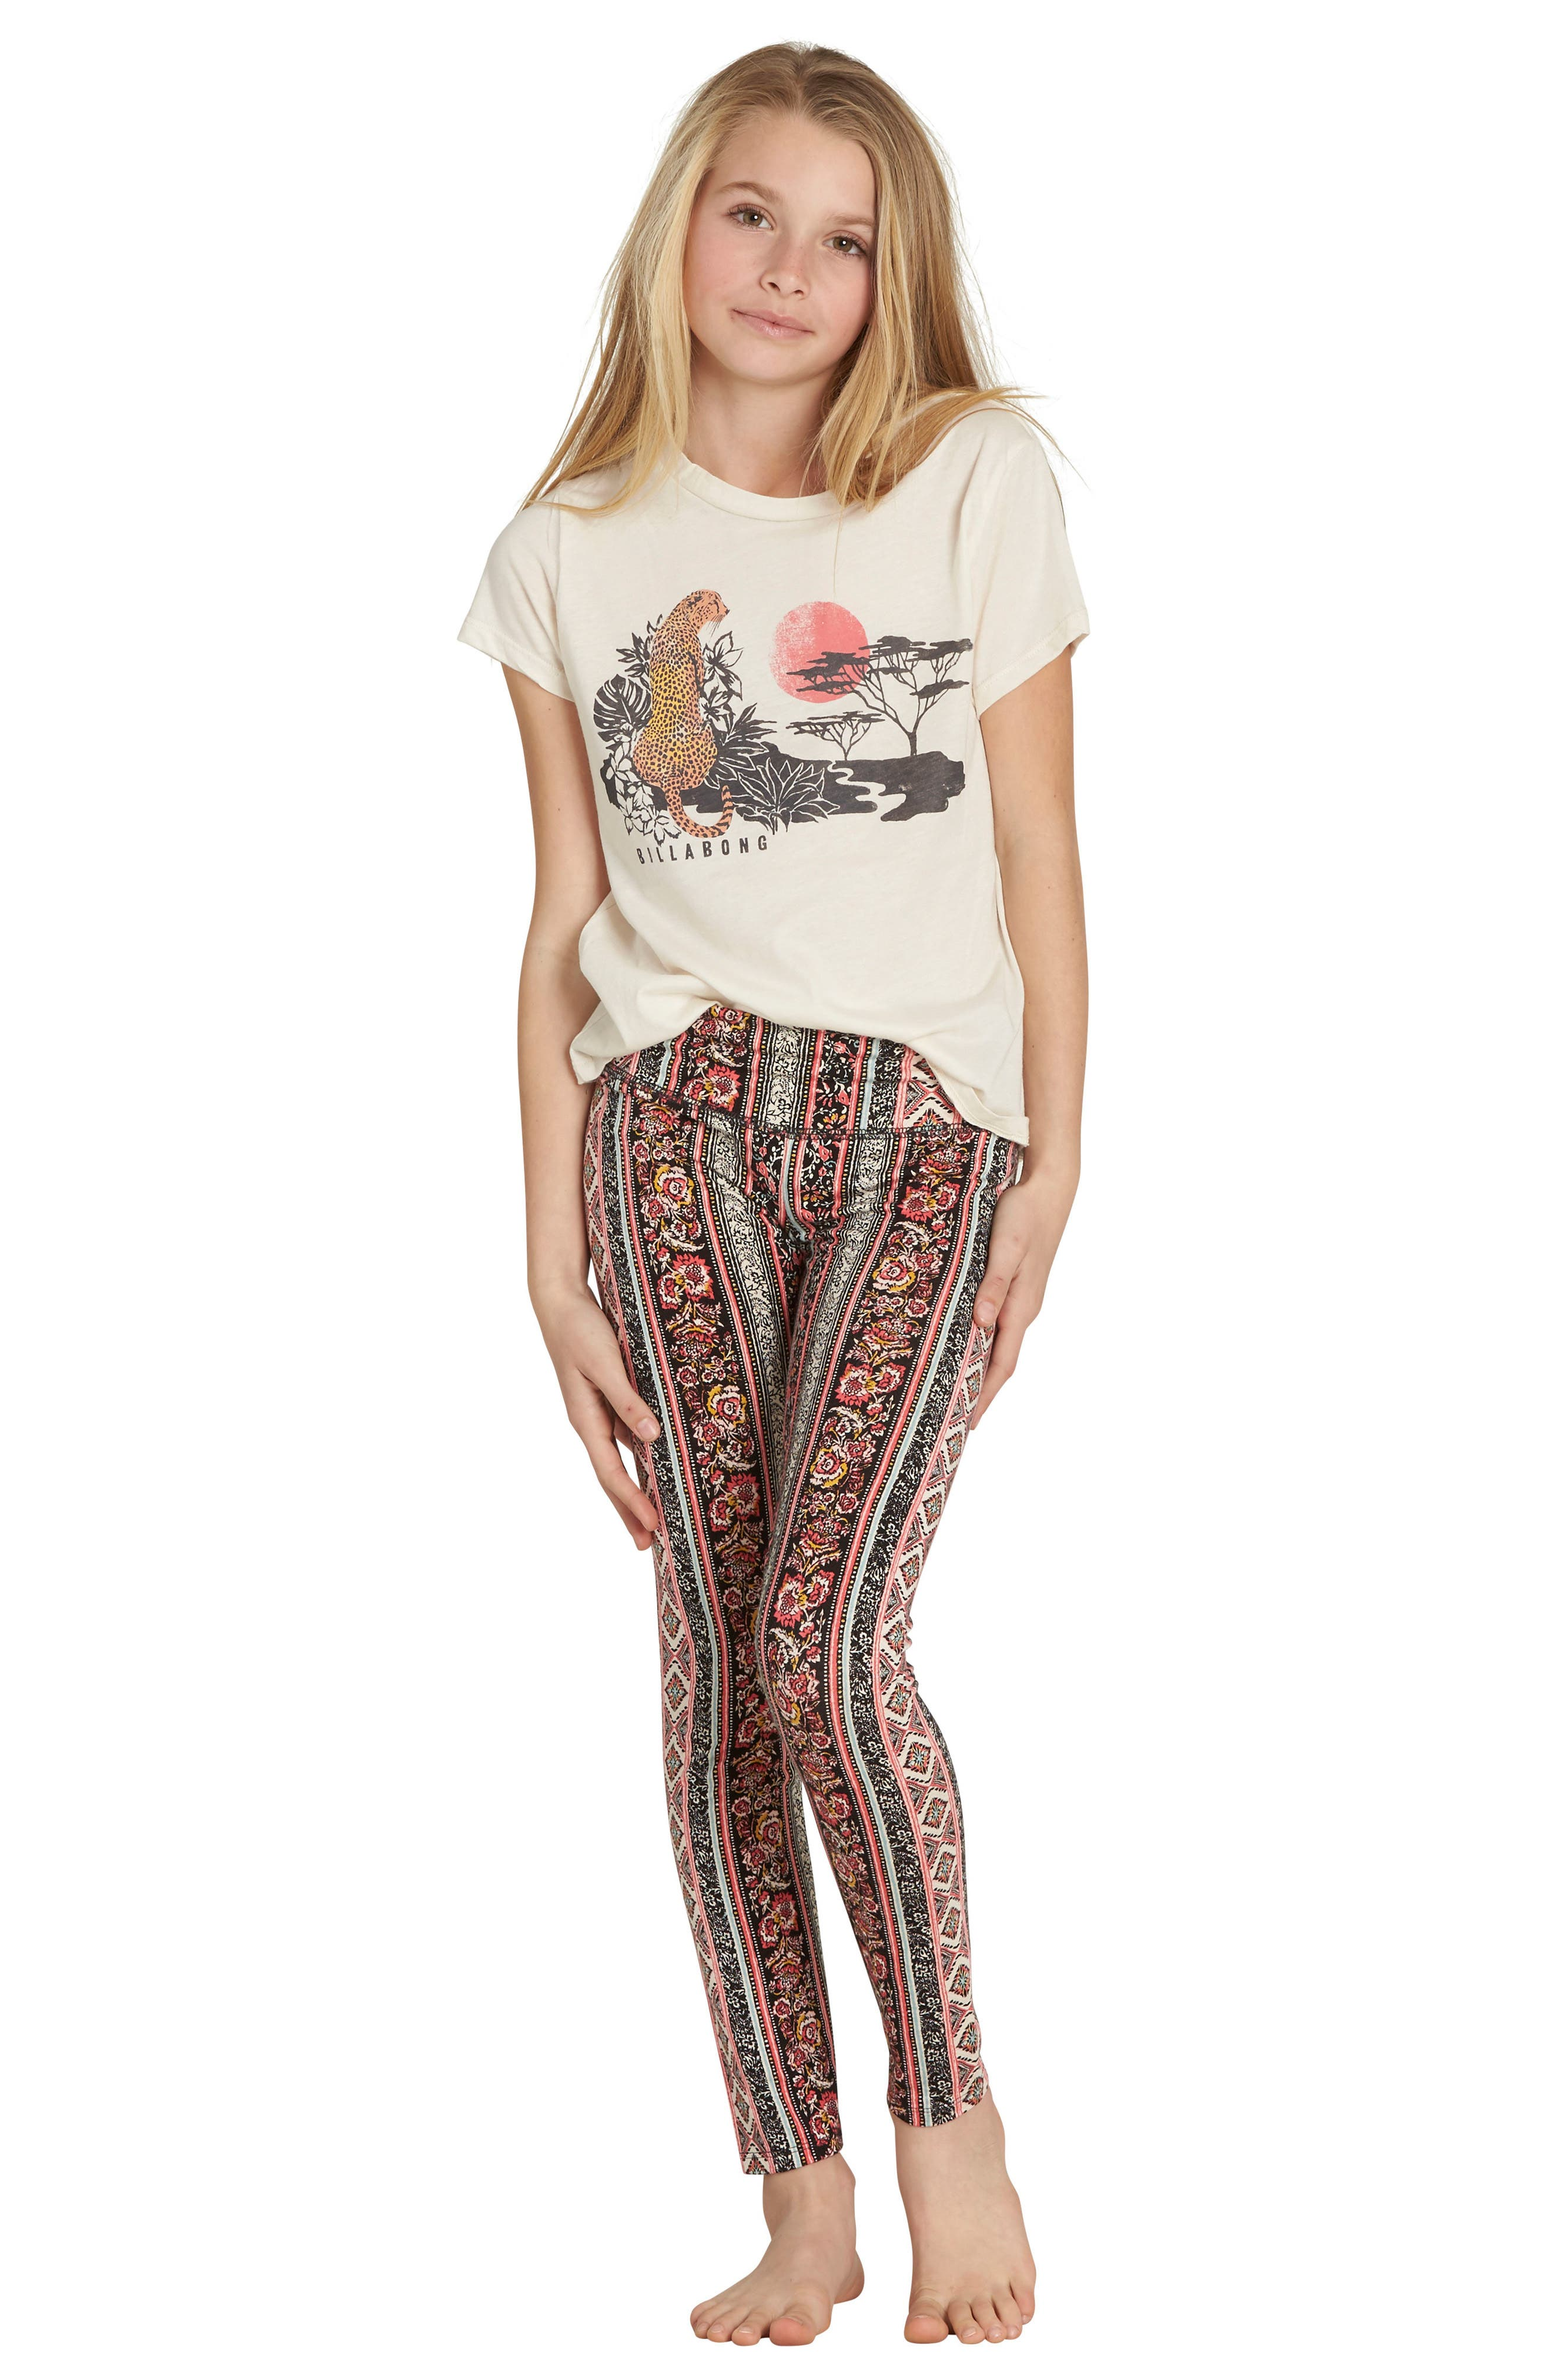 Main Image - Billabong Face the Gloom Graphic Tee (Little Girls & Big Girls)